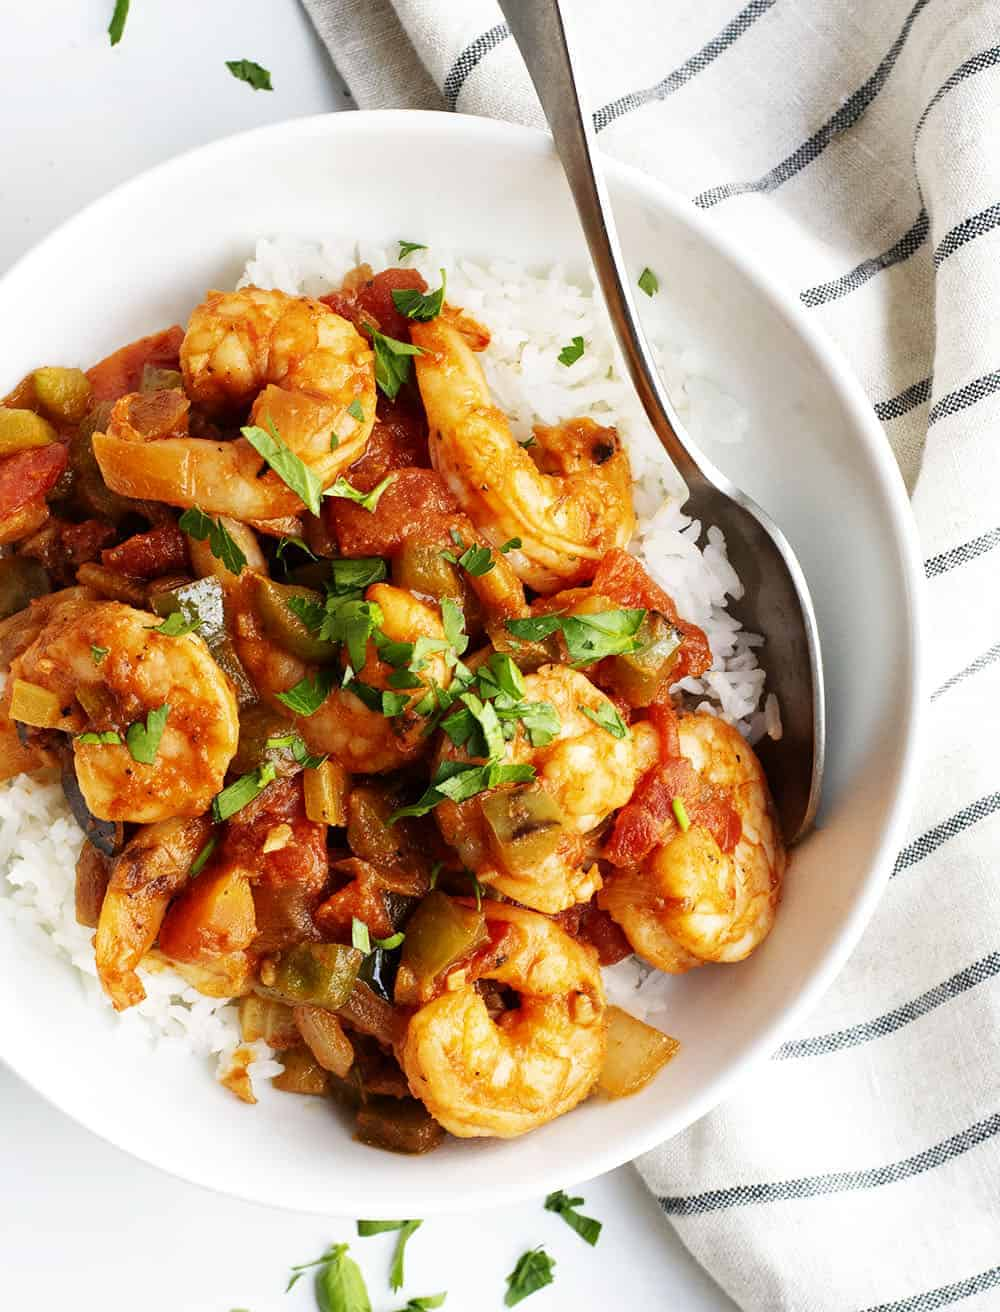 Shrimp Creole served over rice in a white bowl